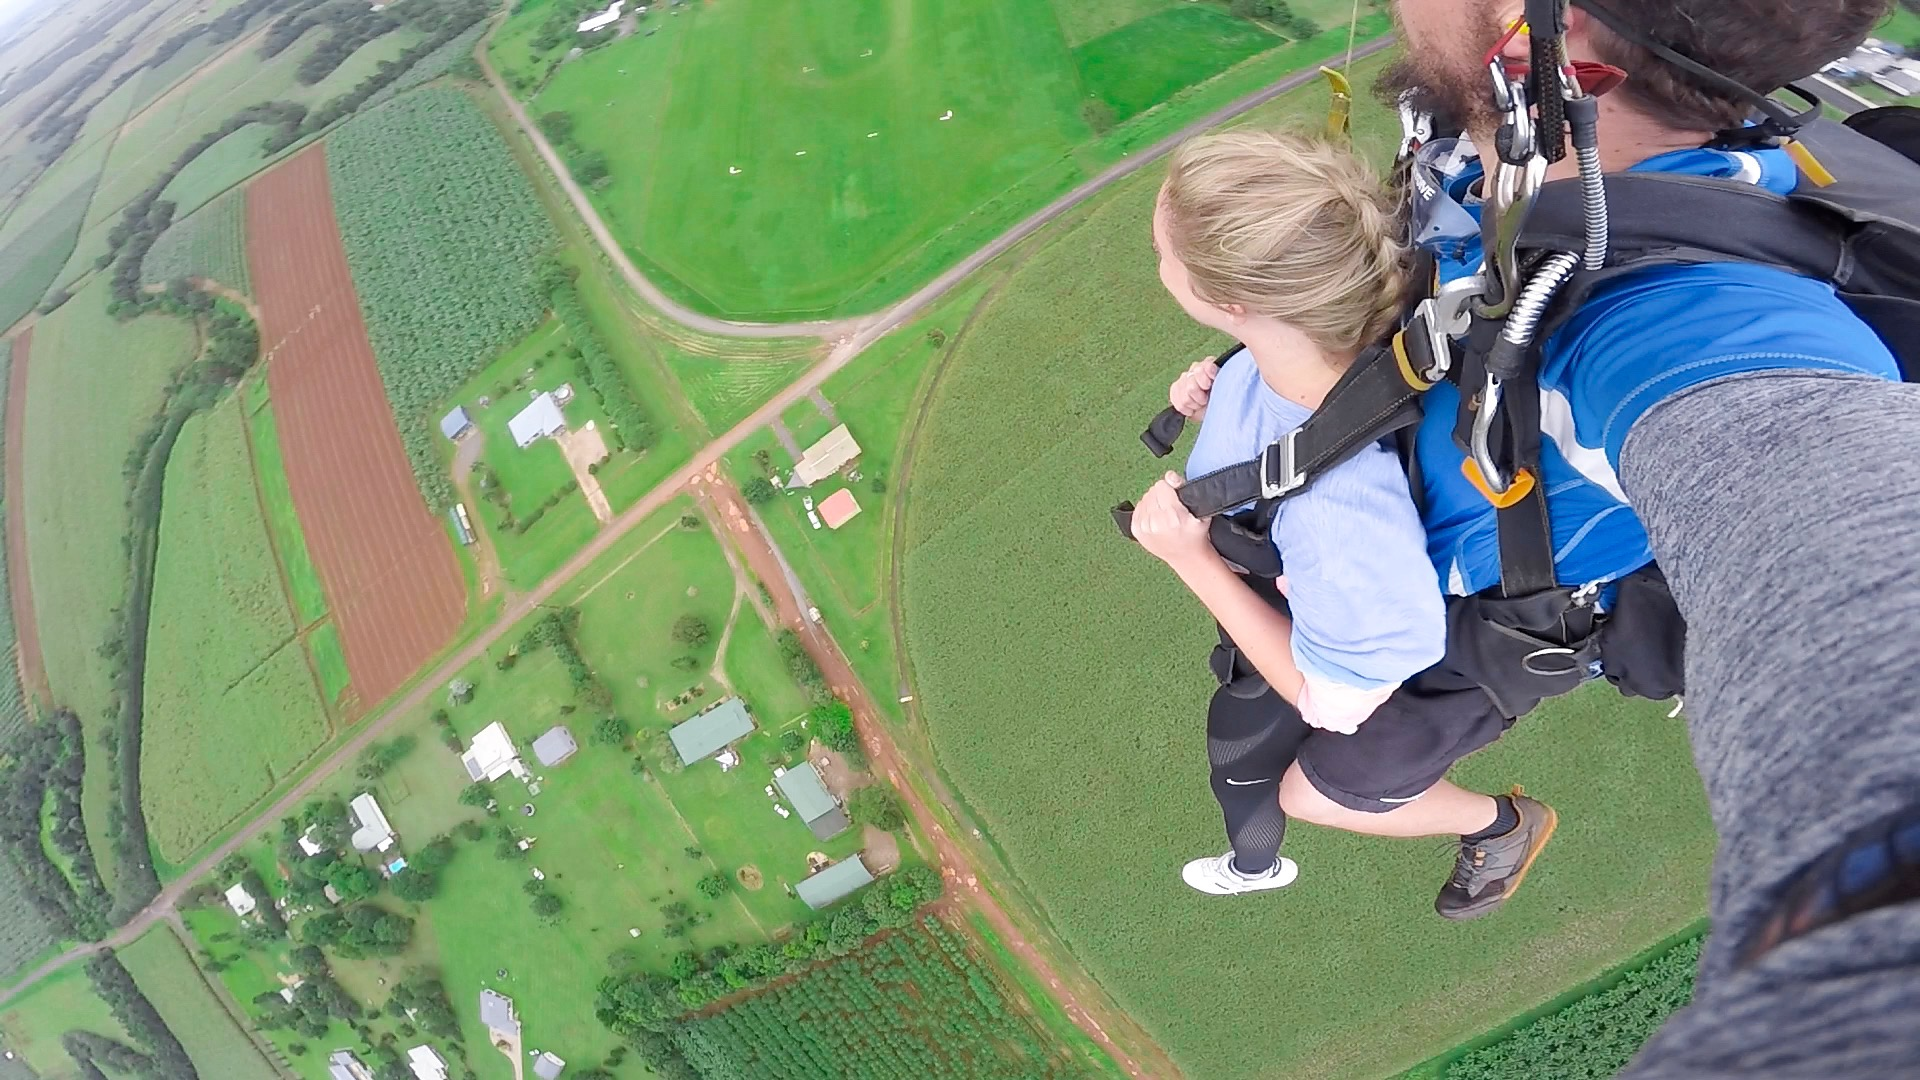 Skydiving: A High-Stakes History